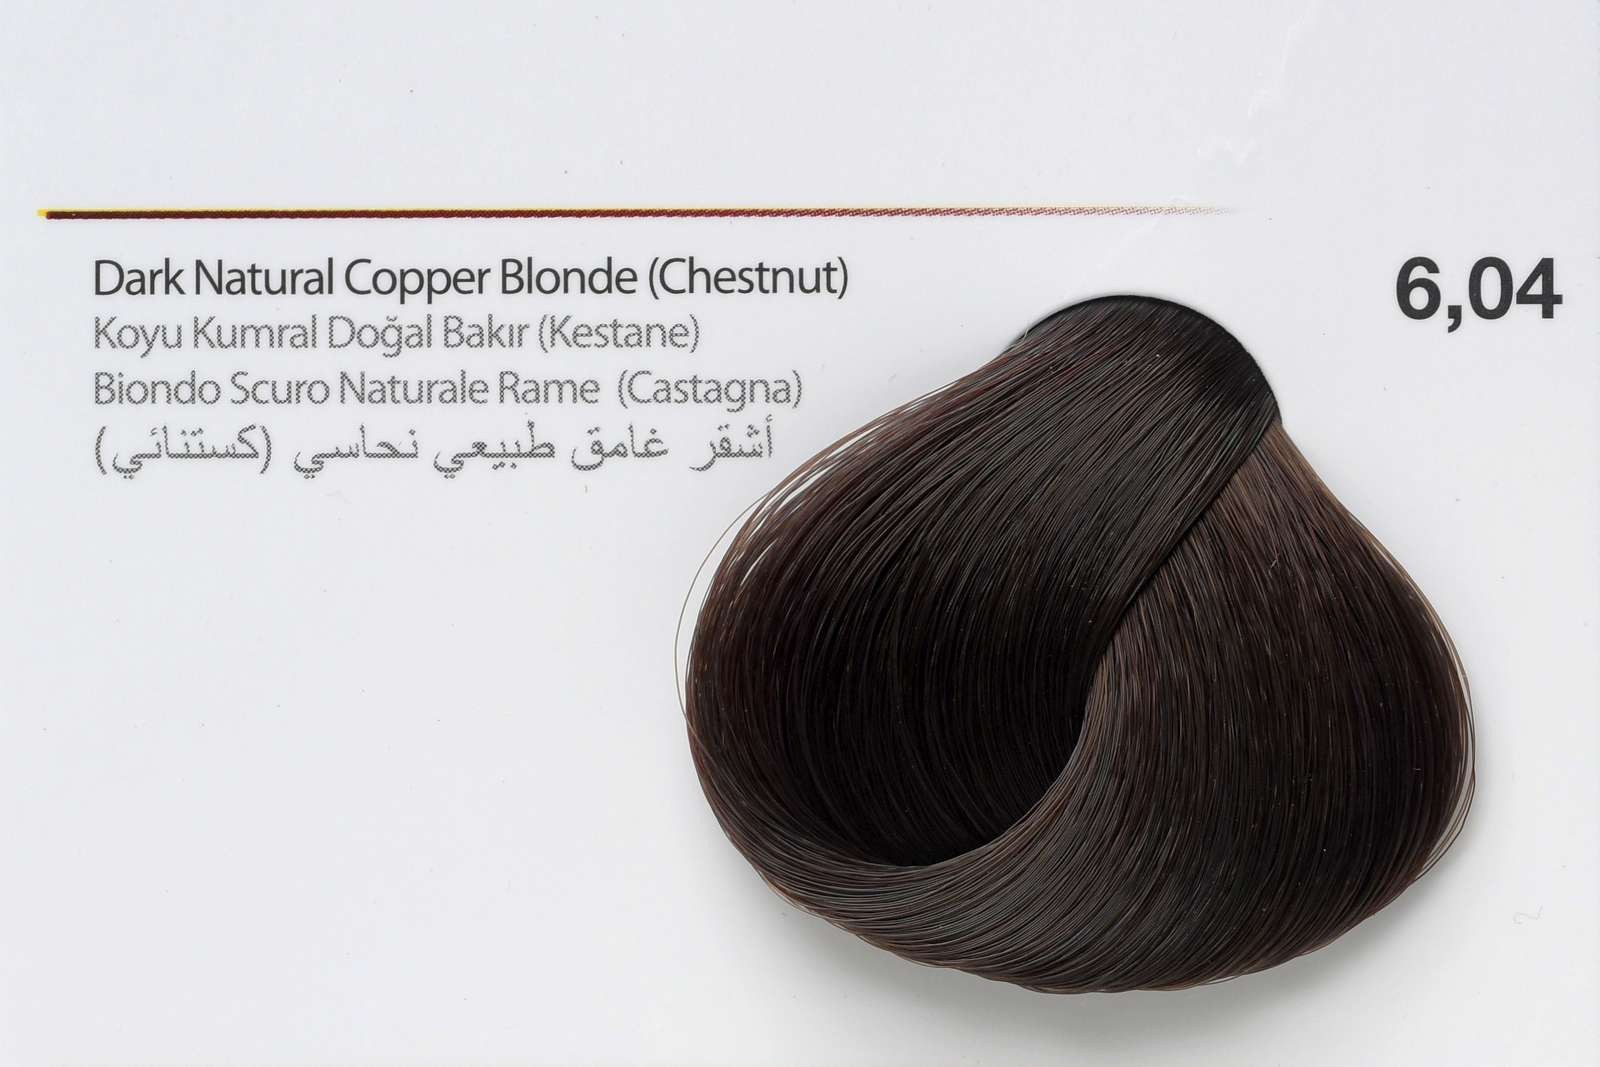 6,04 - Dark Natural Copper Blonde (Chestnut)